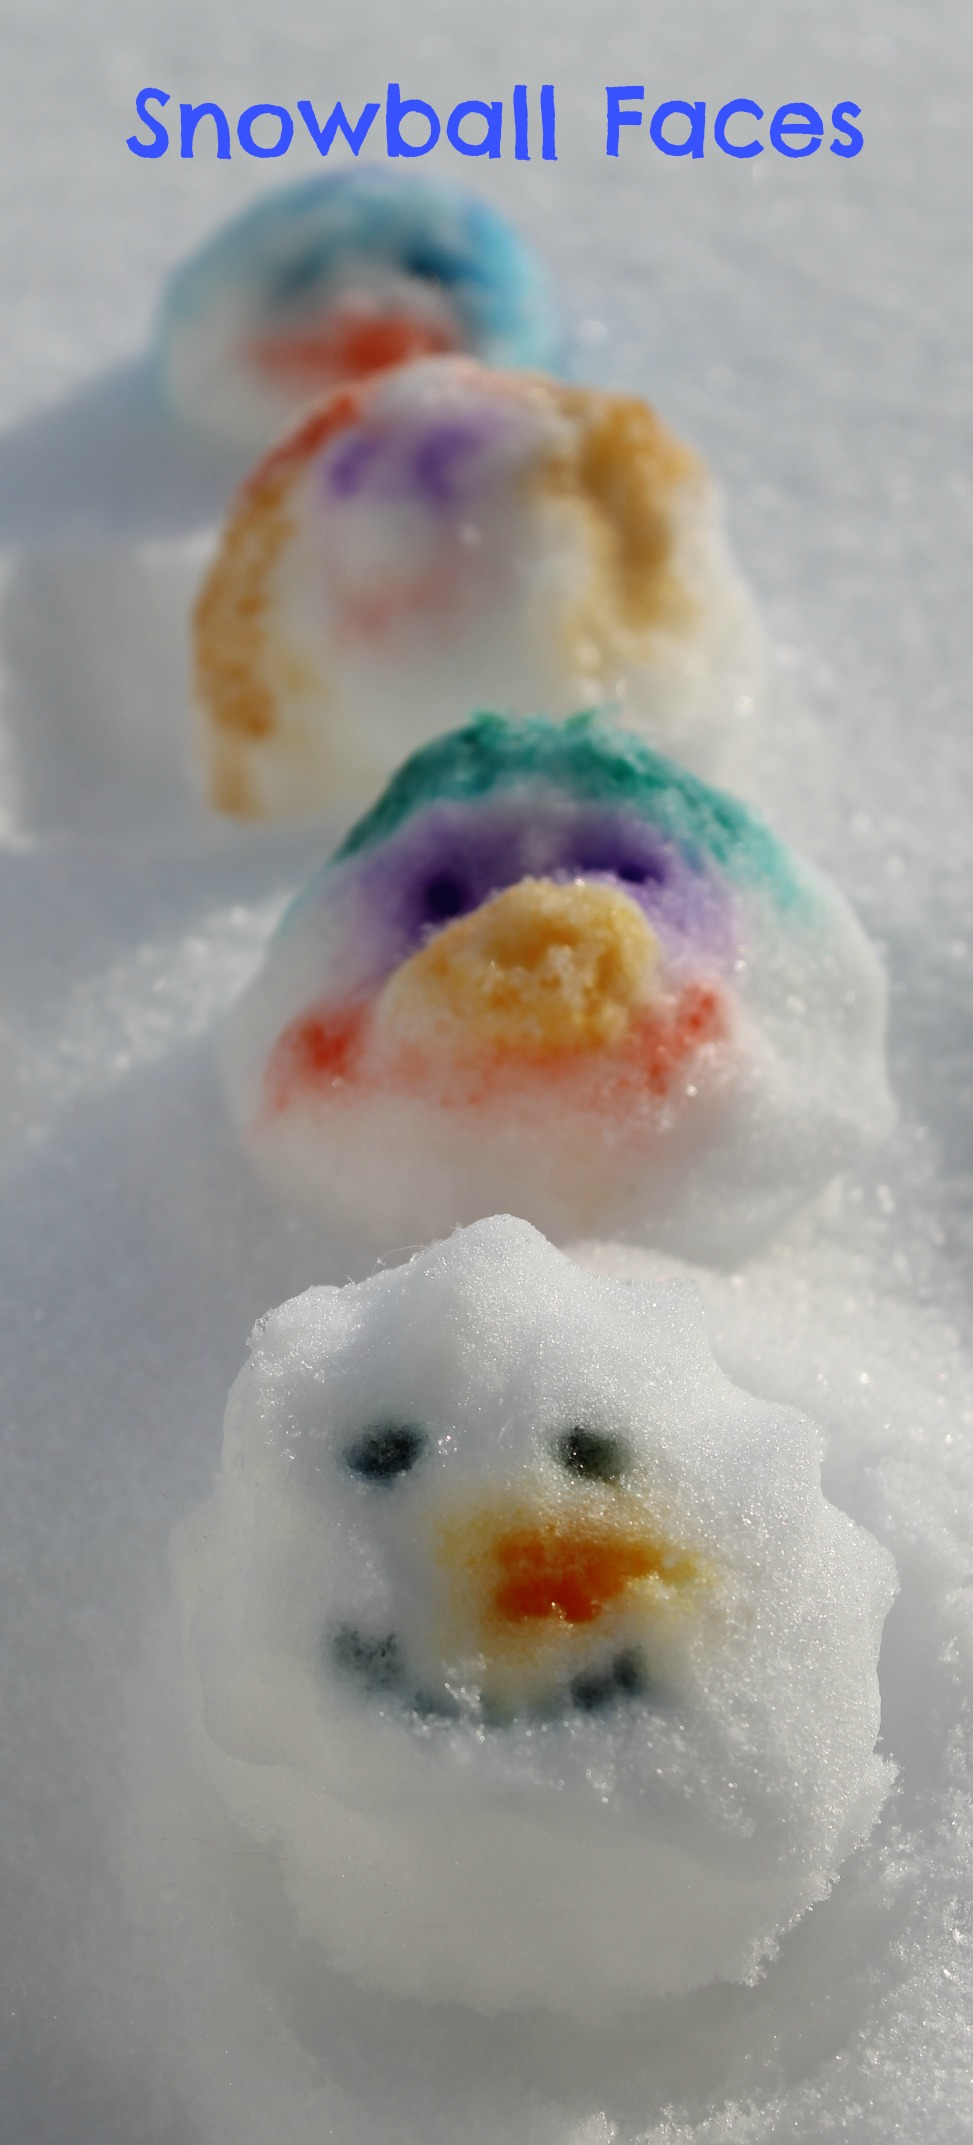 srawinf faces on snowballs